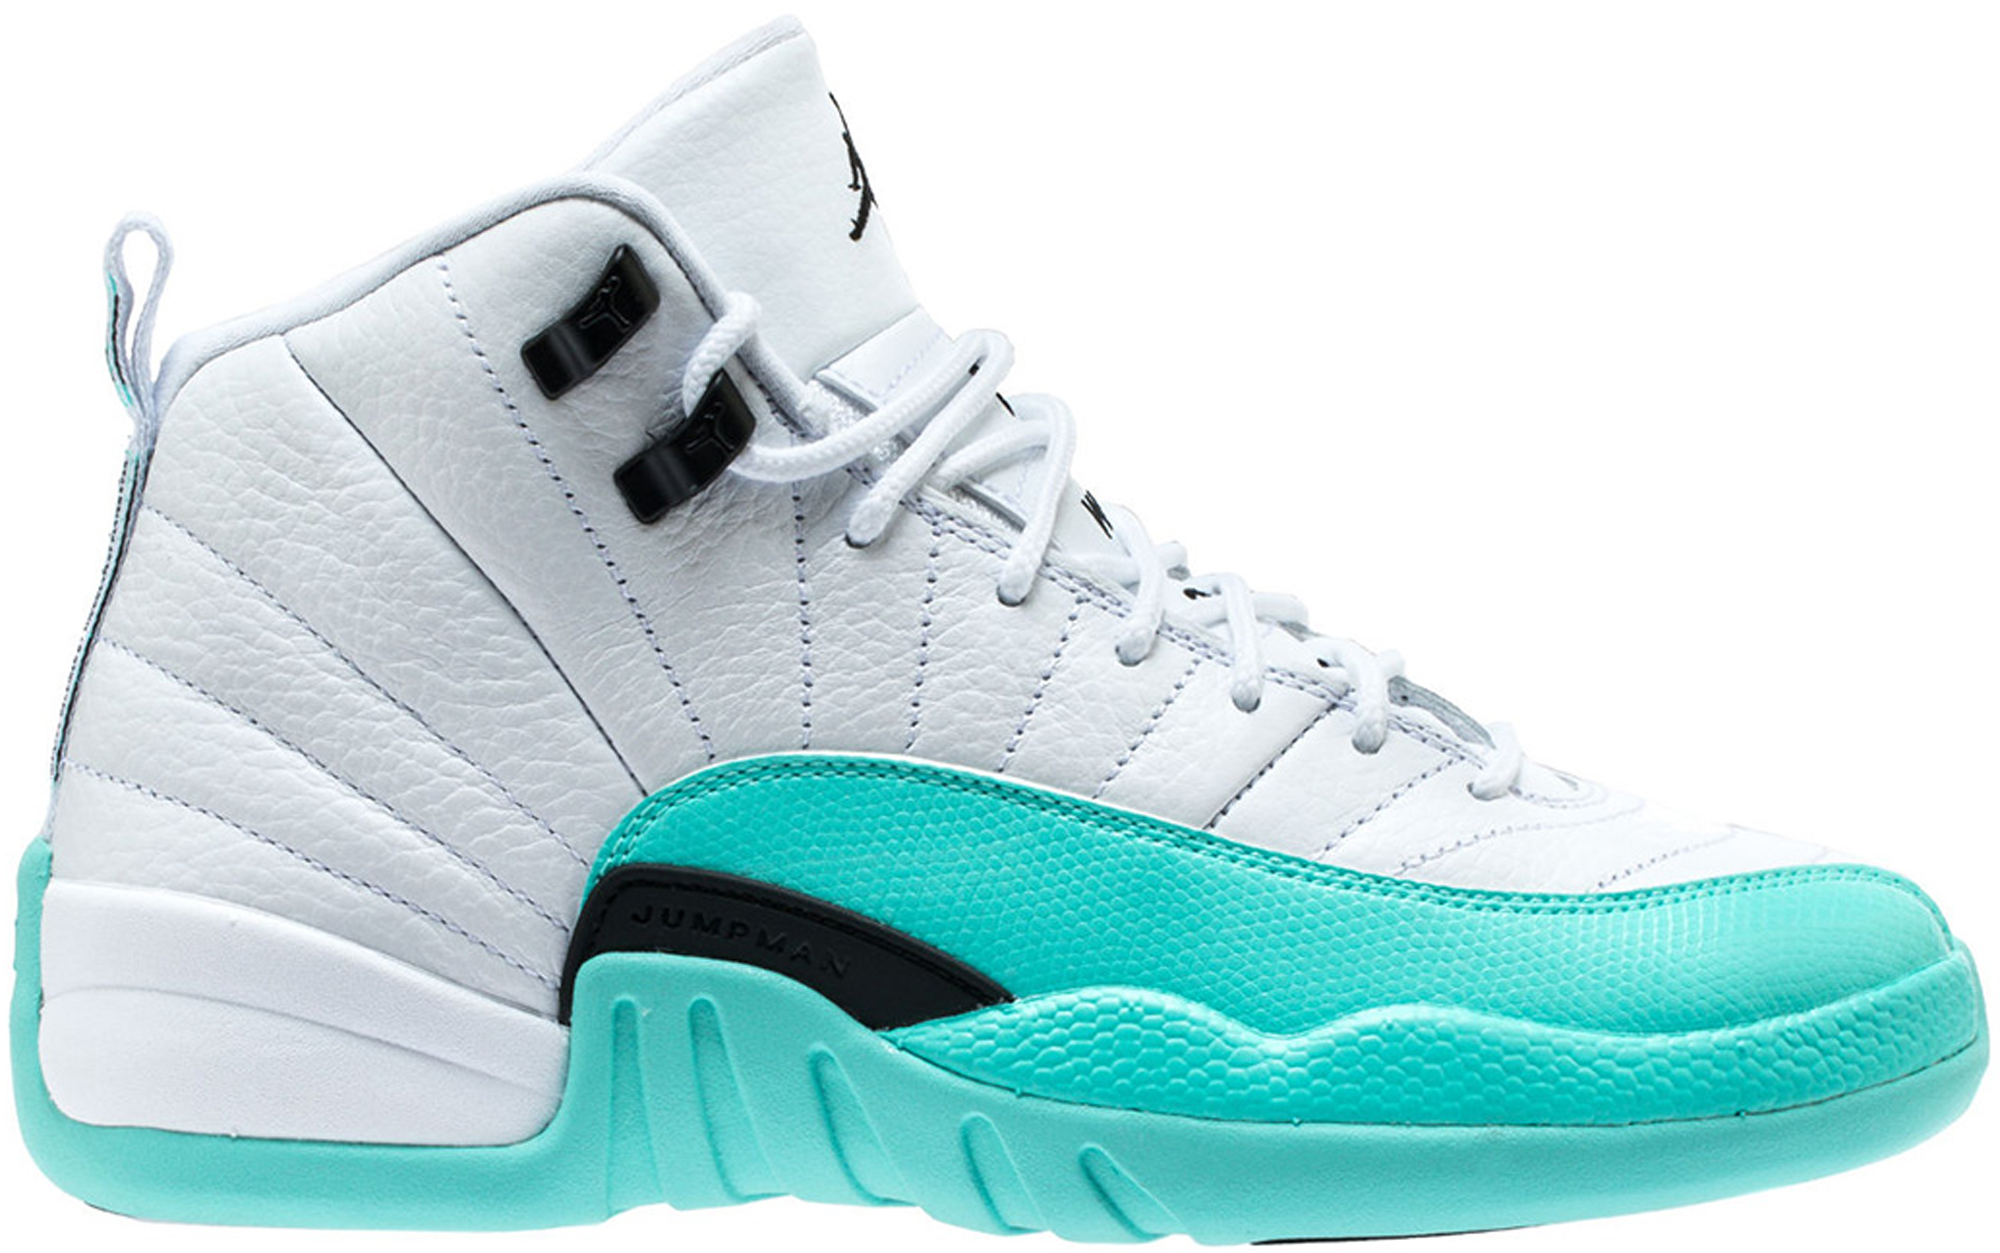 timeless design 46725 54e8c Girls Air Jordan 12 Light Aqua